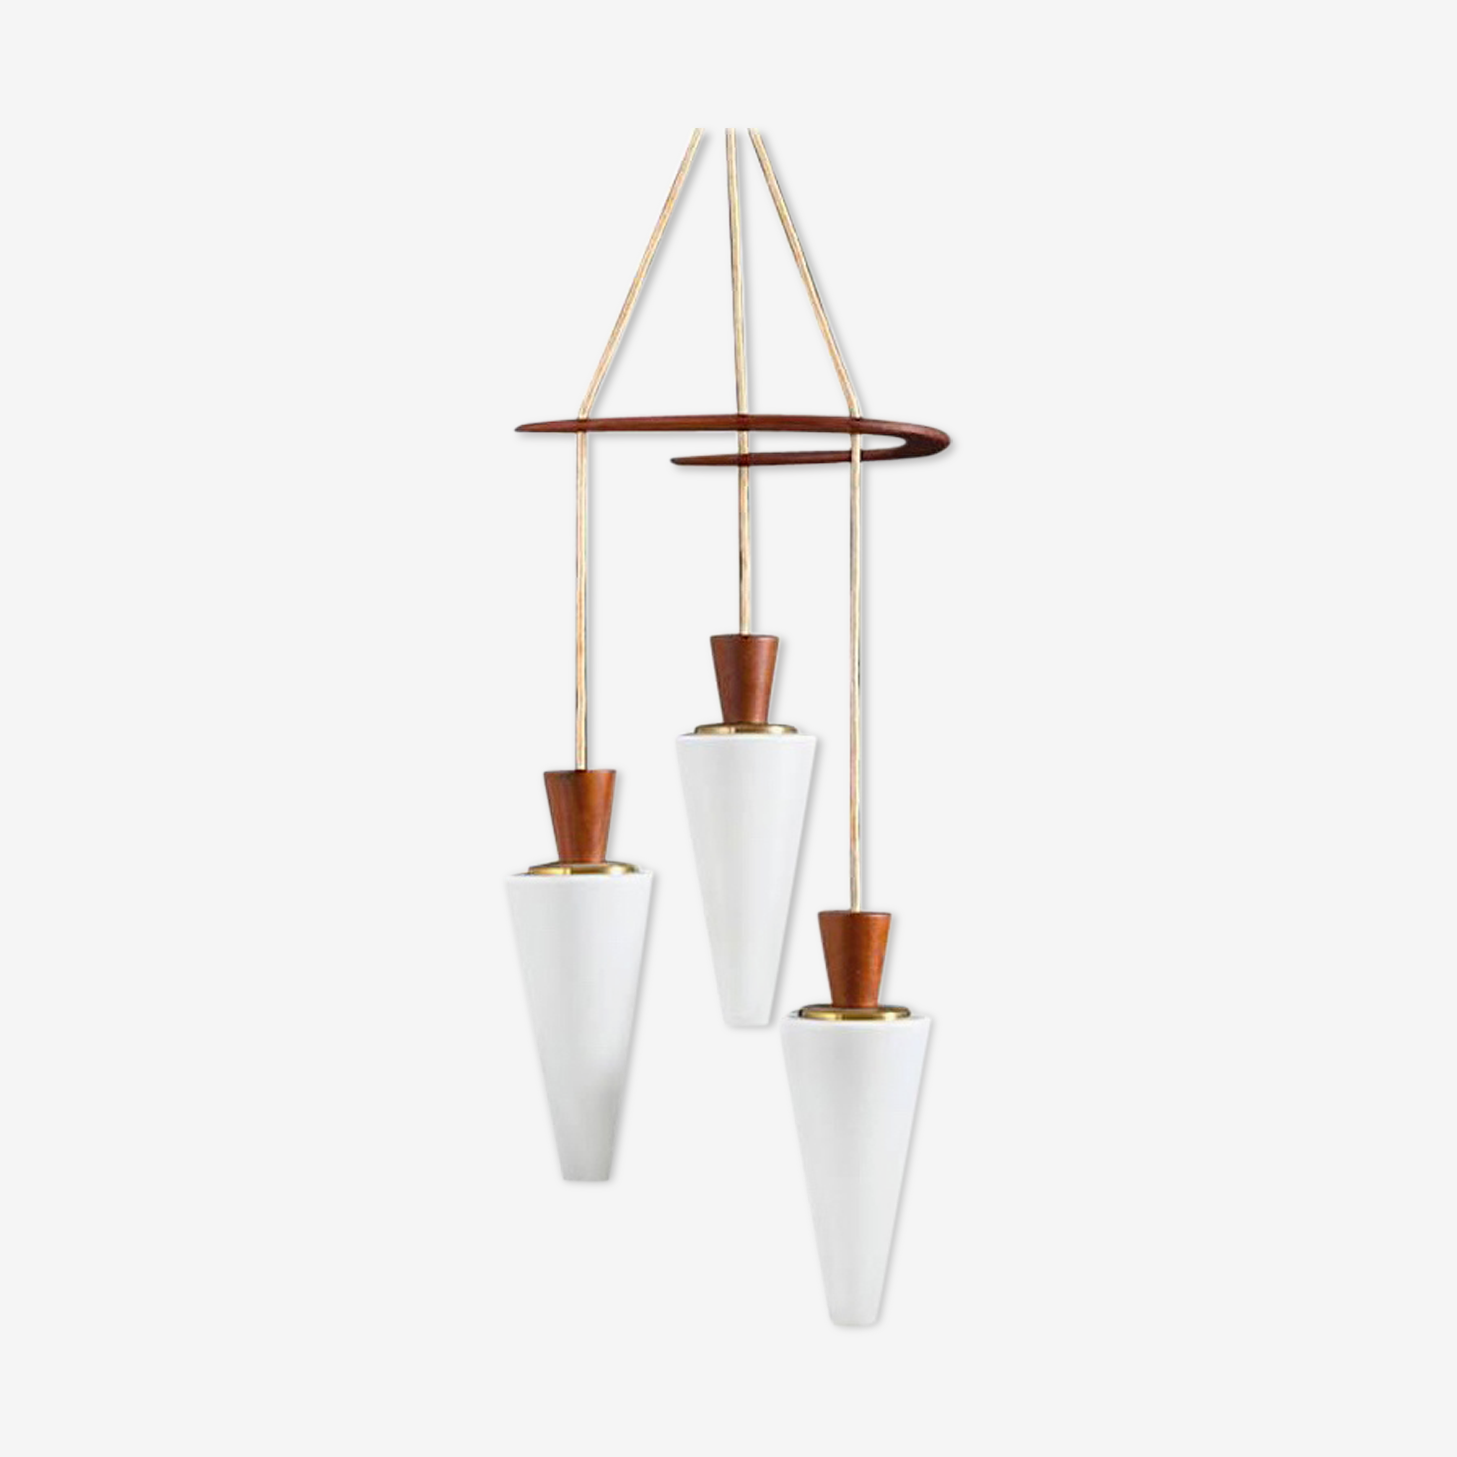 Suspension Boomerang from the middle of the century in teak and glass